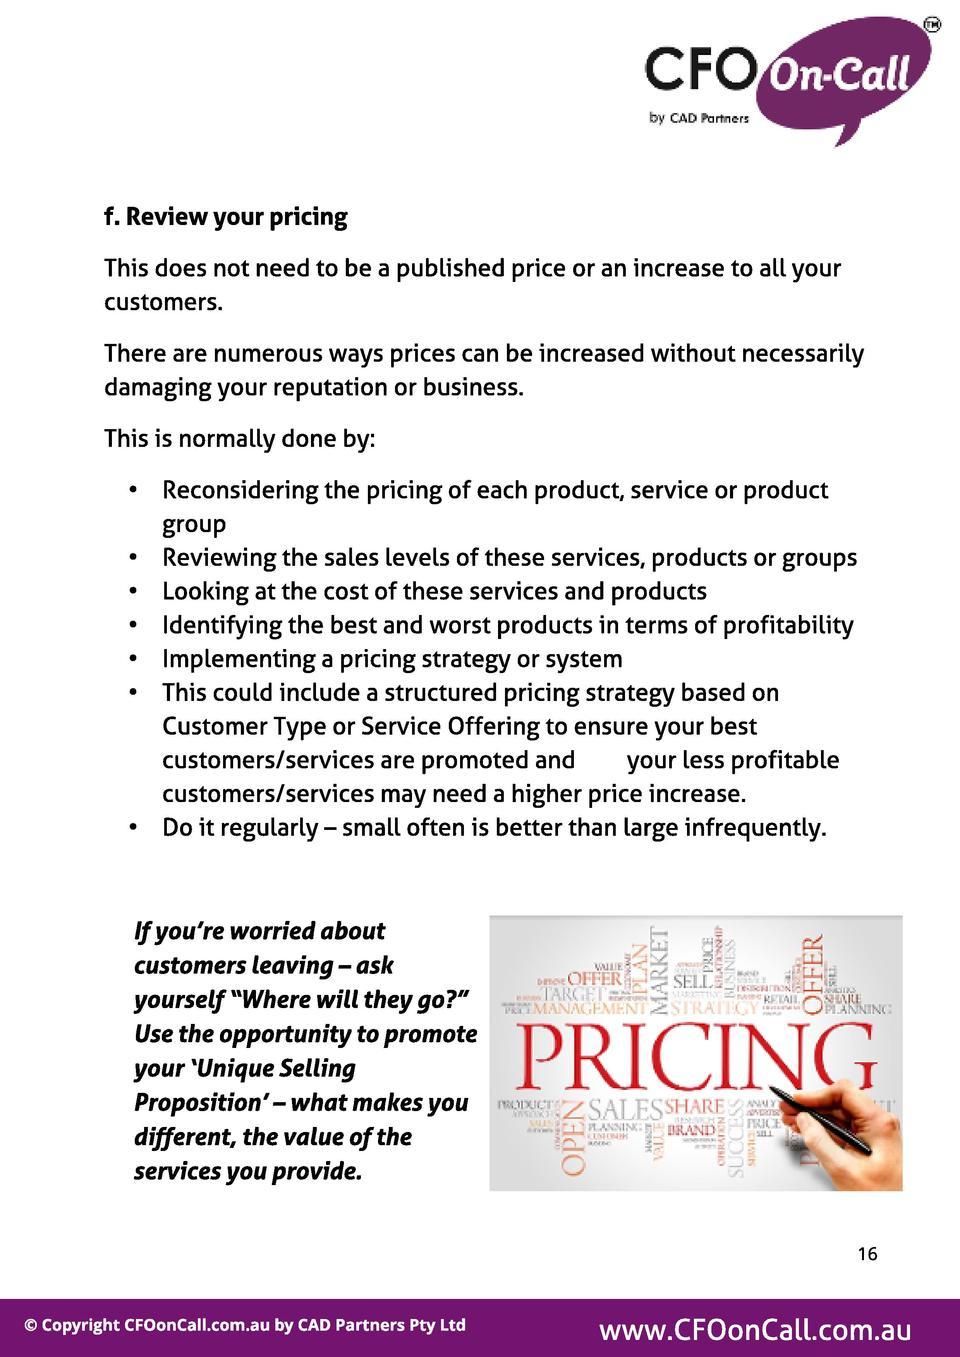 f . Review your pricing This does not need to be a published price or an increase to all your customers. There are numerou...